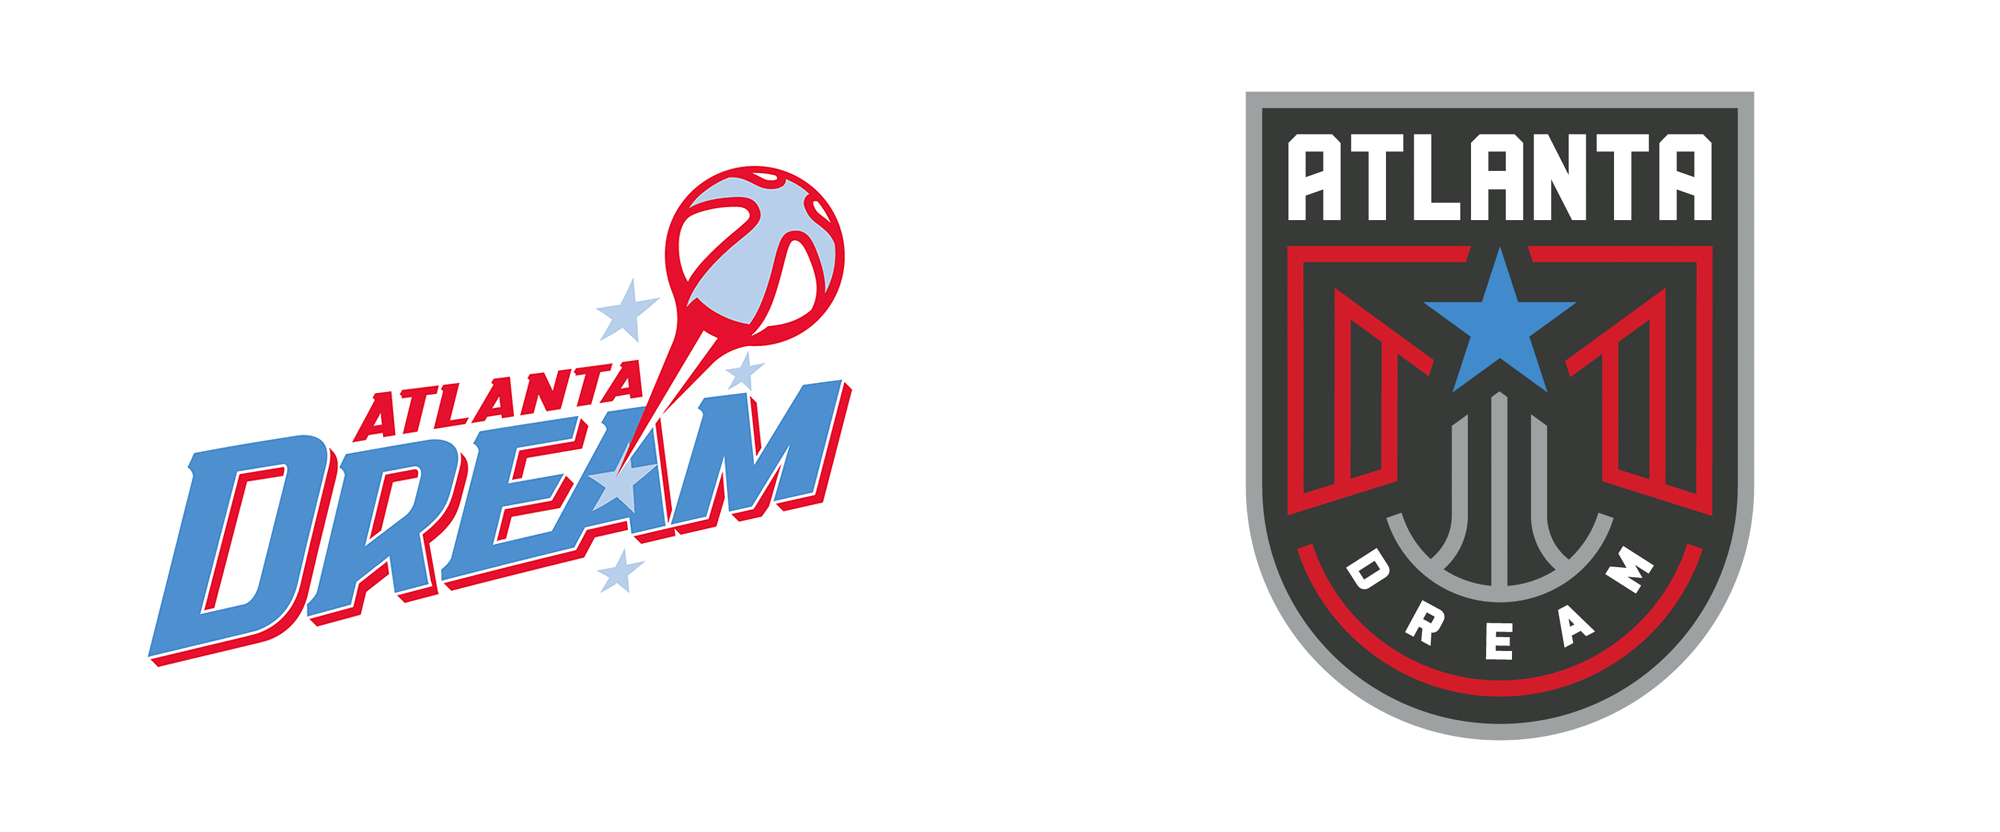 New Logos for Atlanta Dream by Tantrum Agency